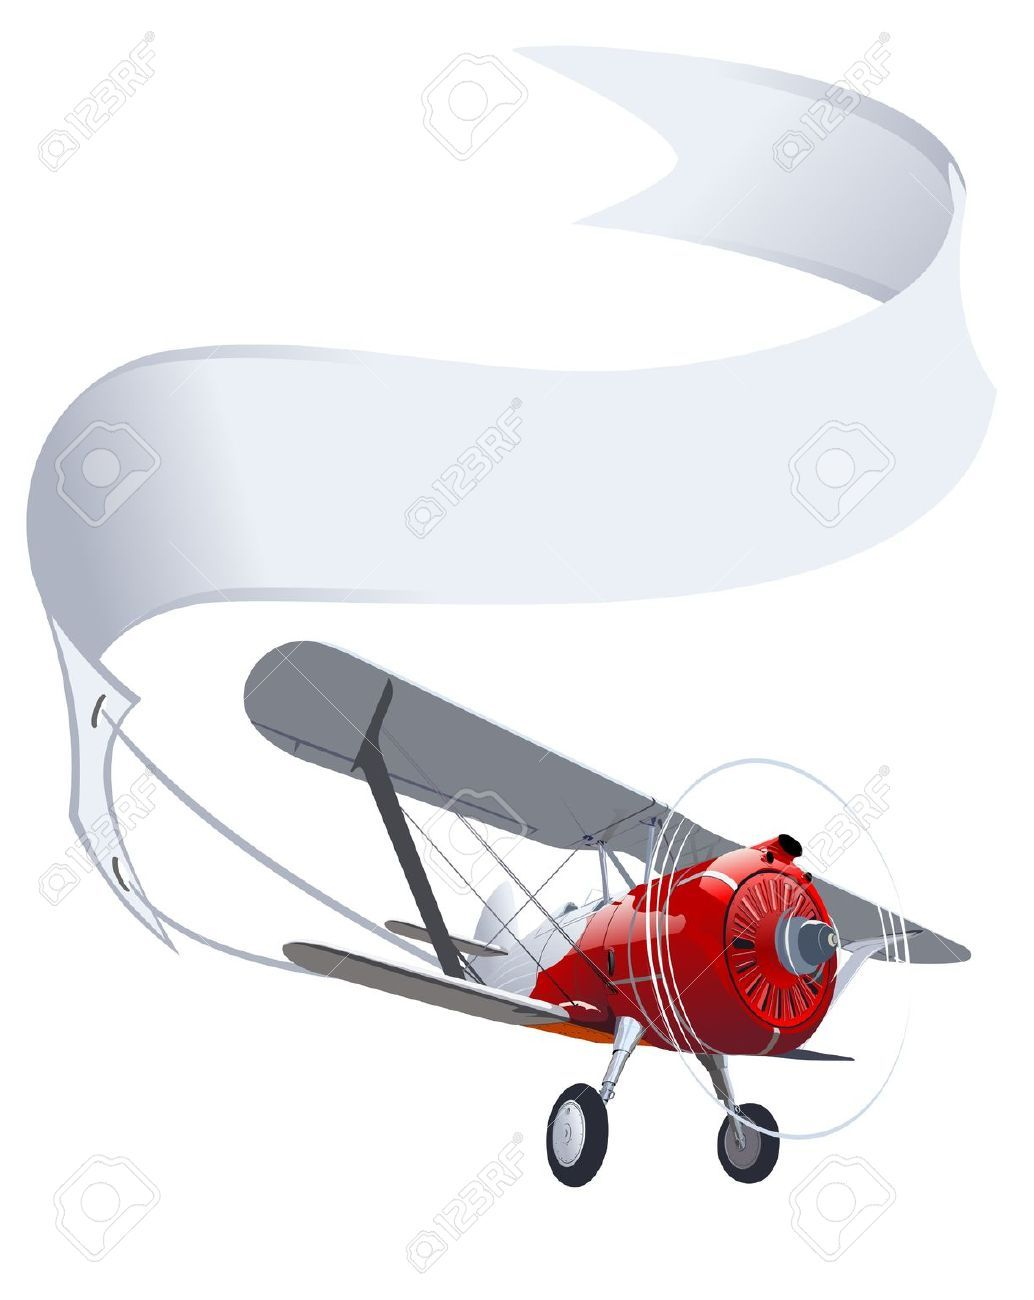 Discover Ideas About Aviation Theme Retro Airplane With Banner